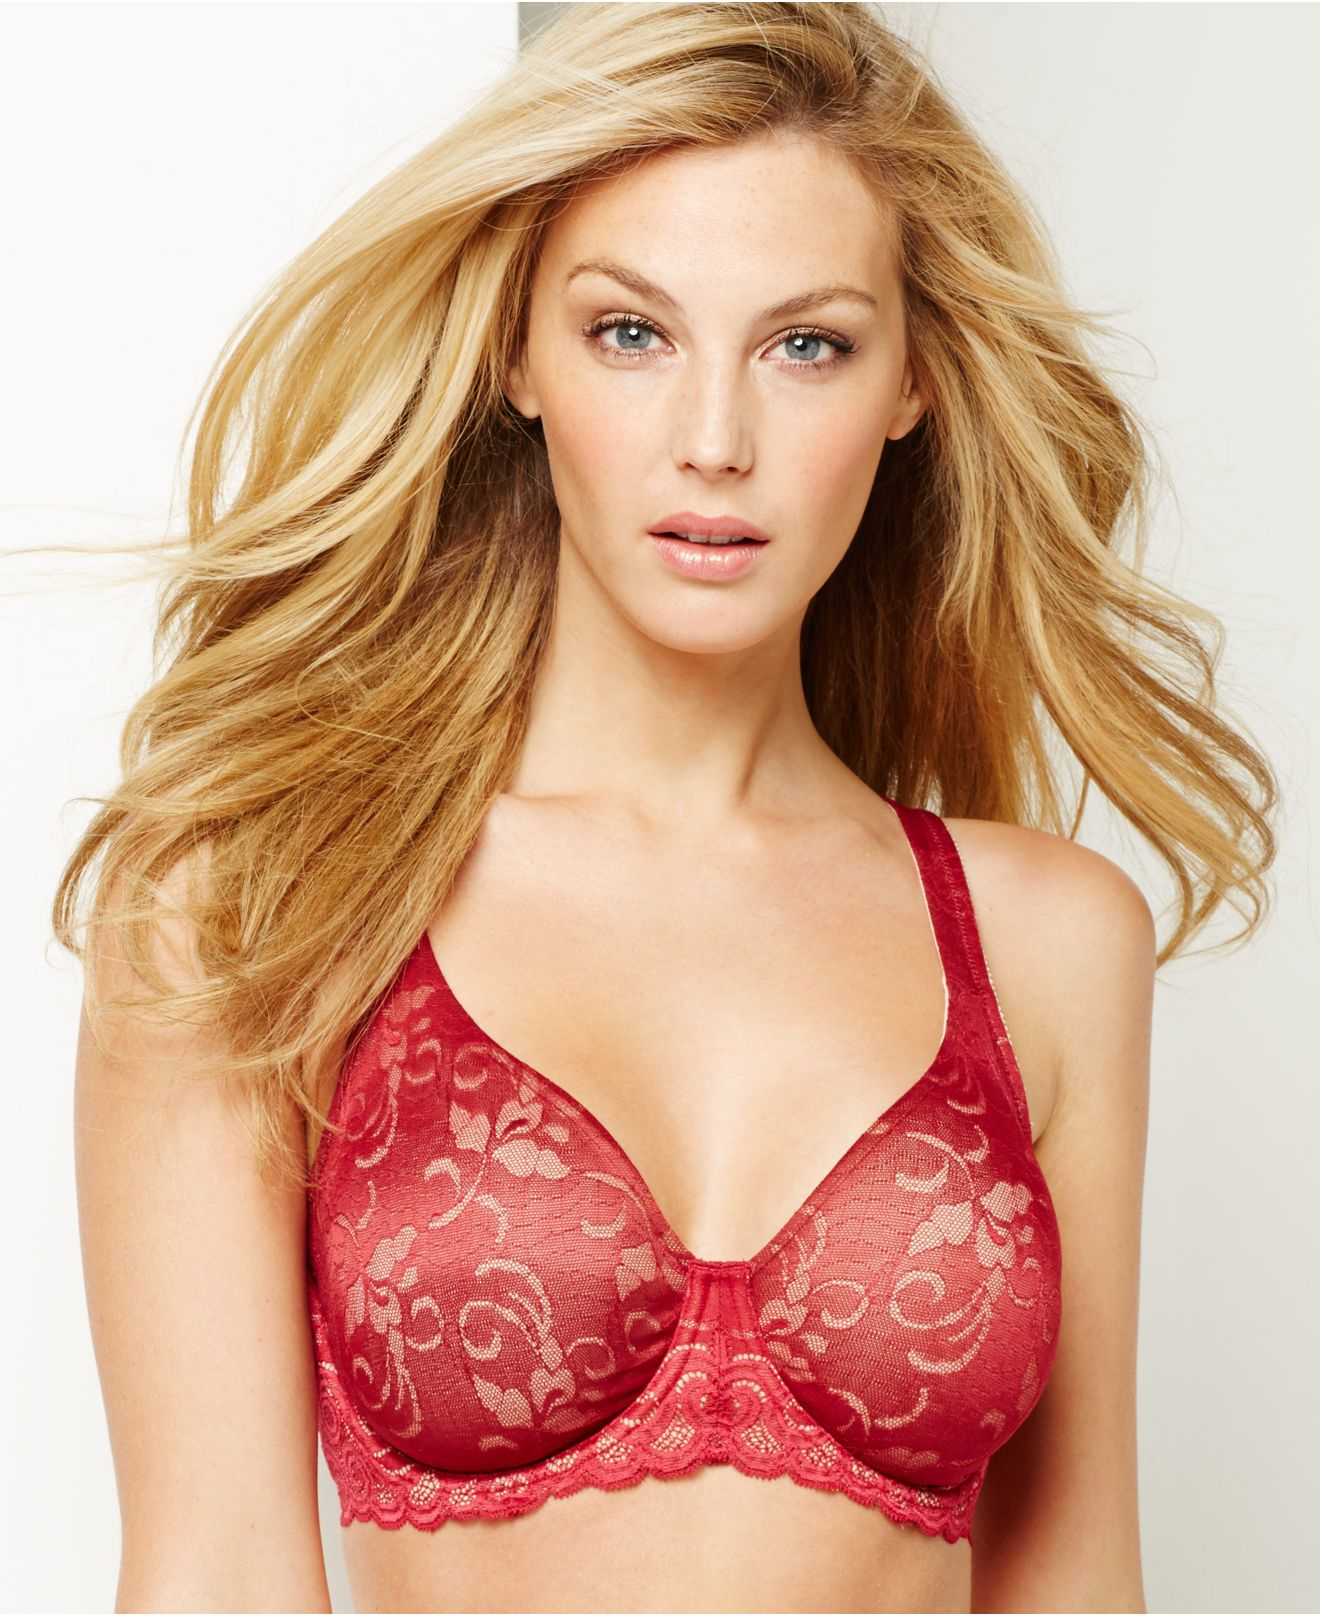 26468063d9812 Lyst - Lilyette By Bali Beautiful Support Lace Minimizer Bra 977 in Red